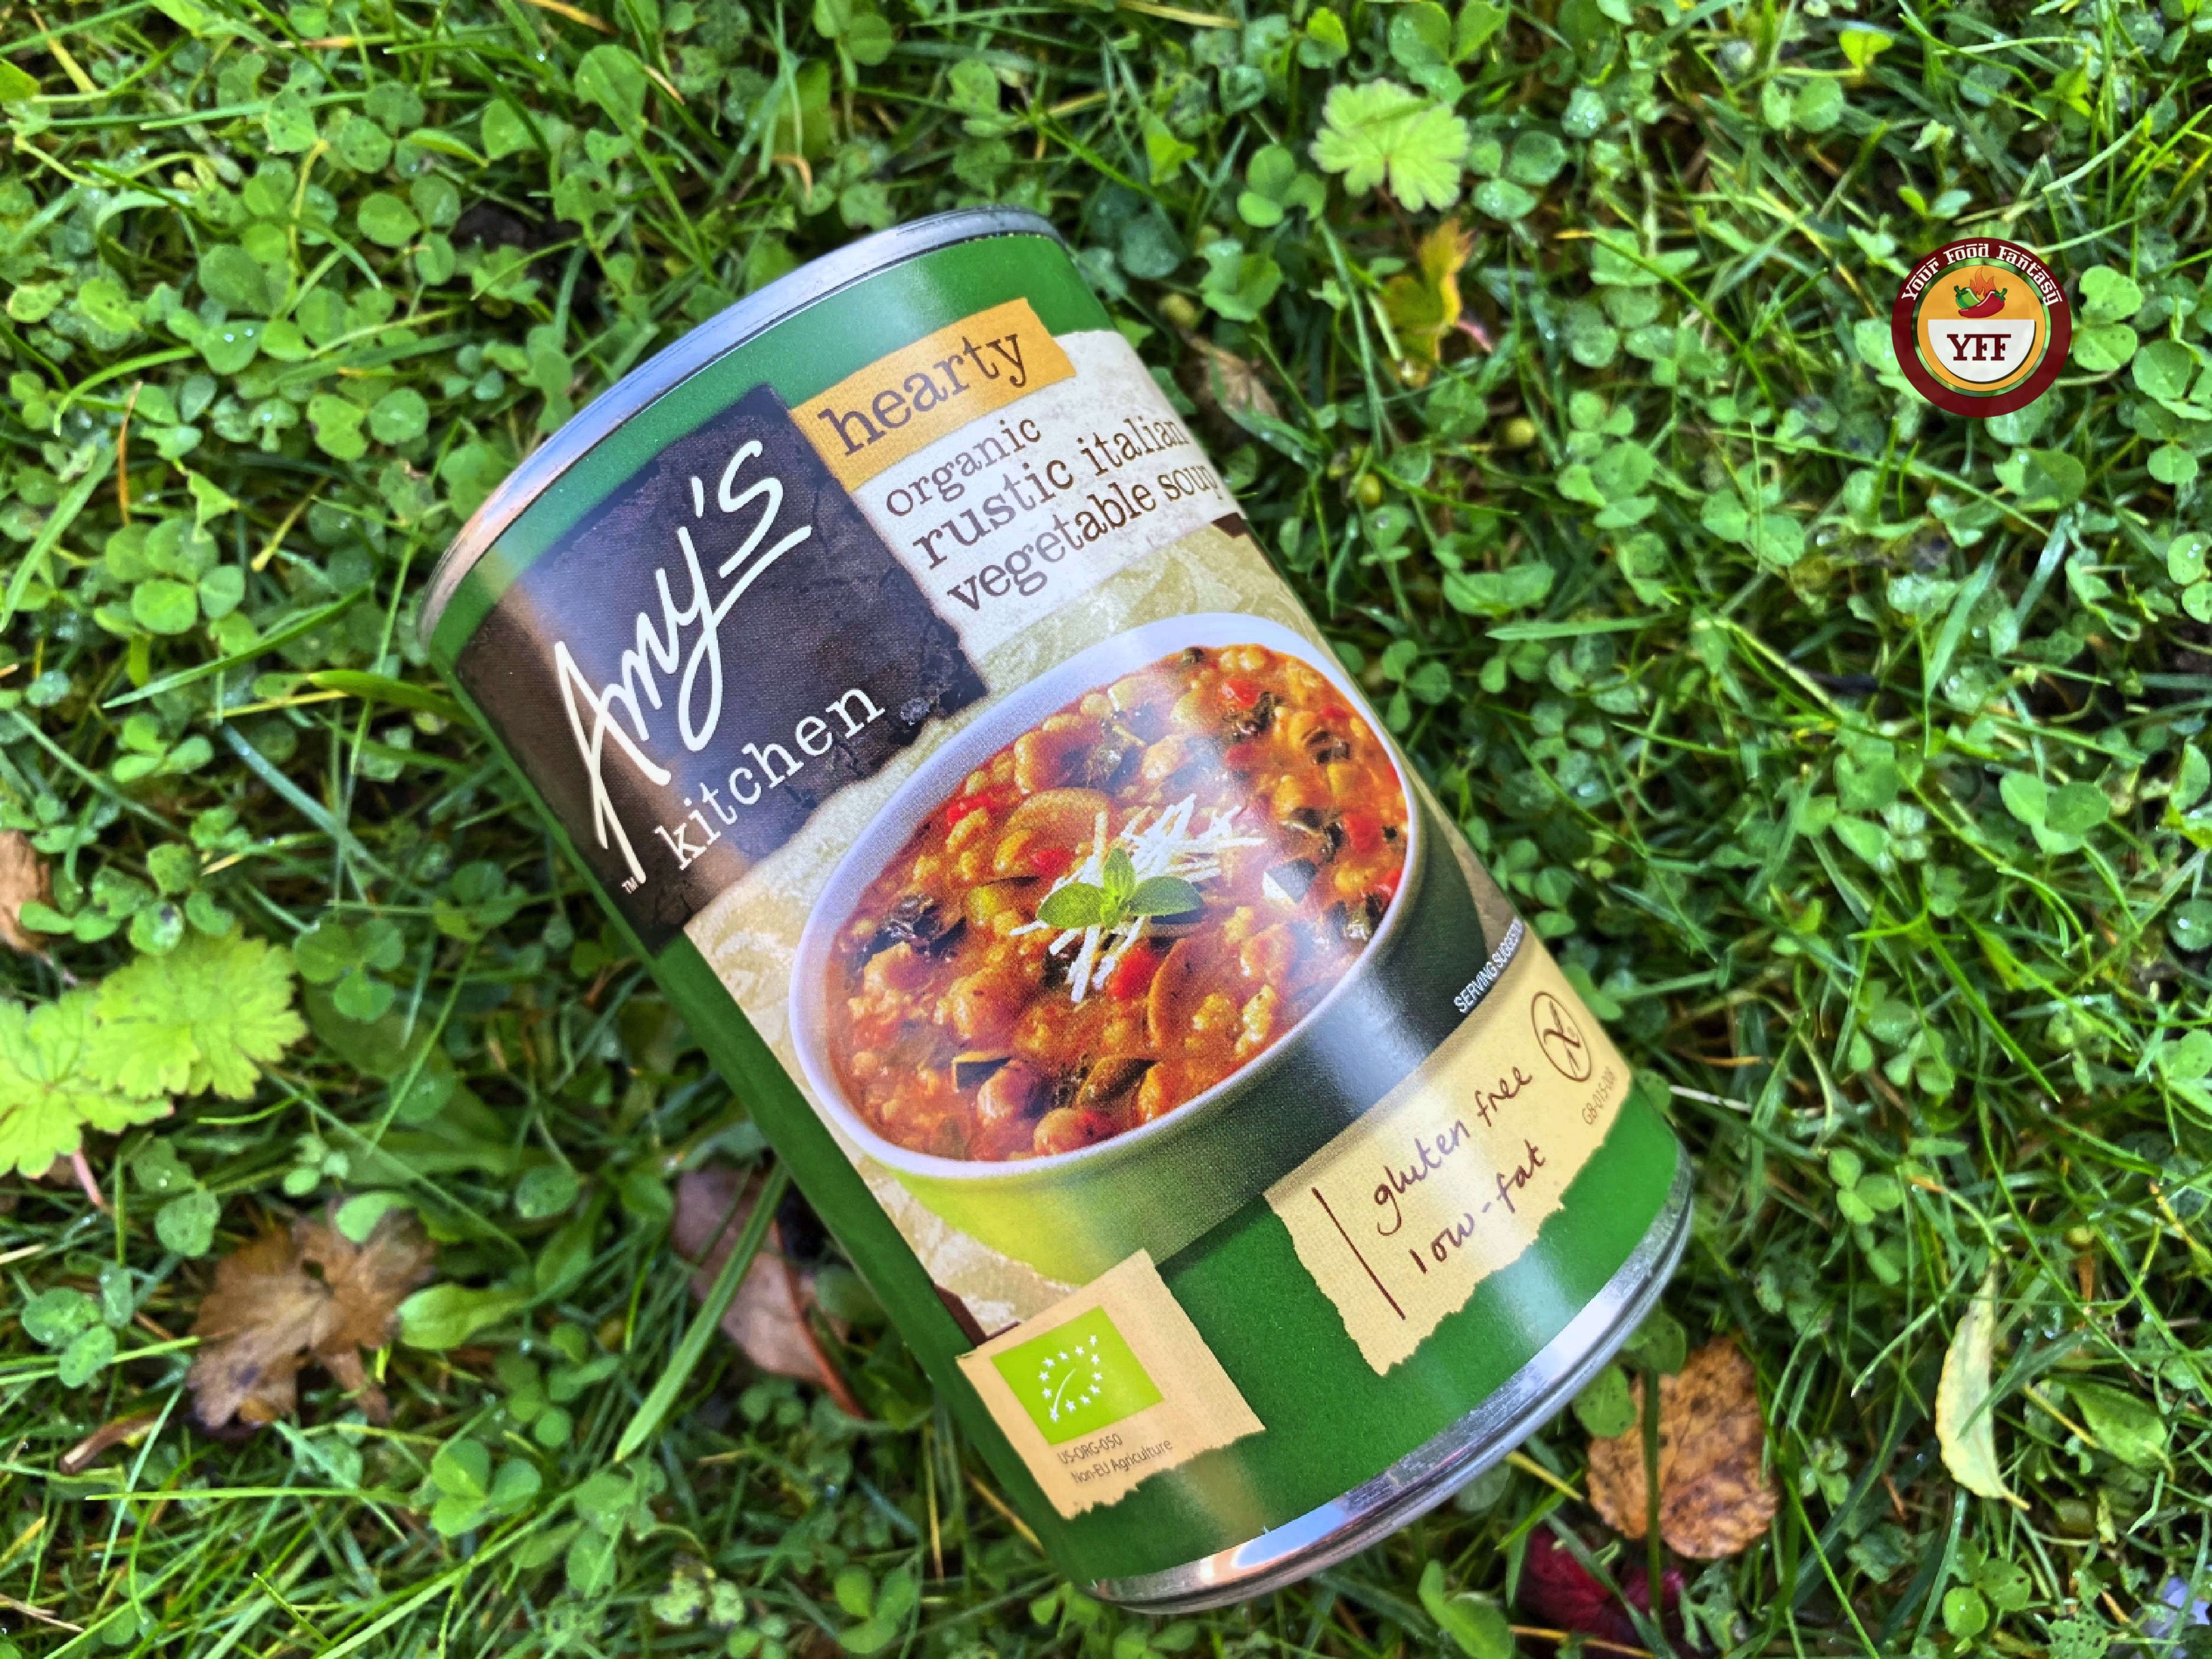 Amy's Kitchen Vegetable Soup   Review by YourFoodFantasy